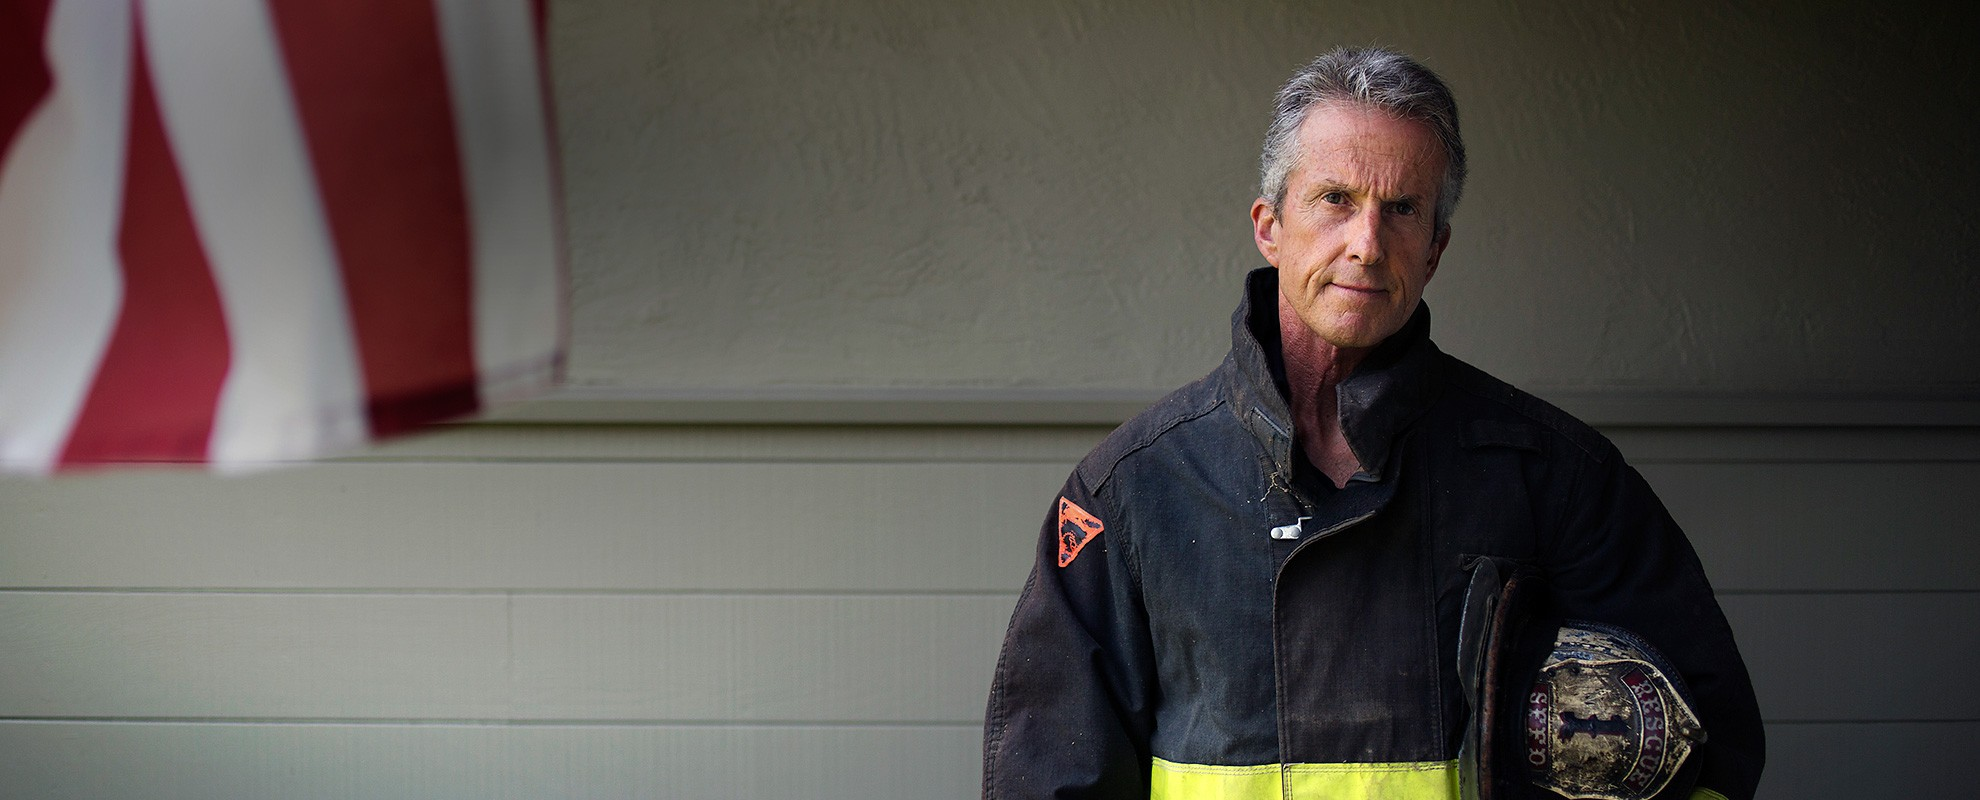 Retired firefighter Tony Stefani.